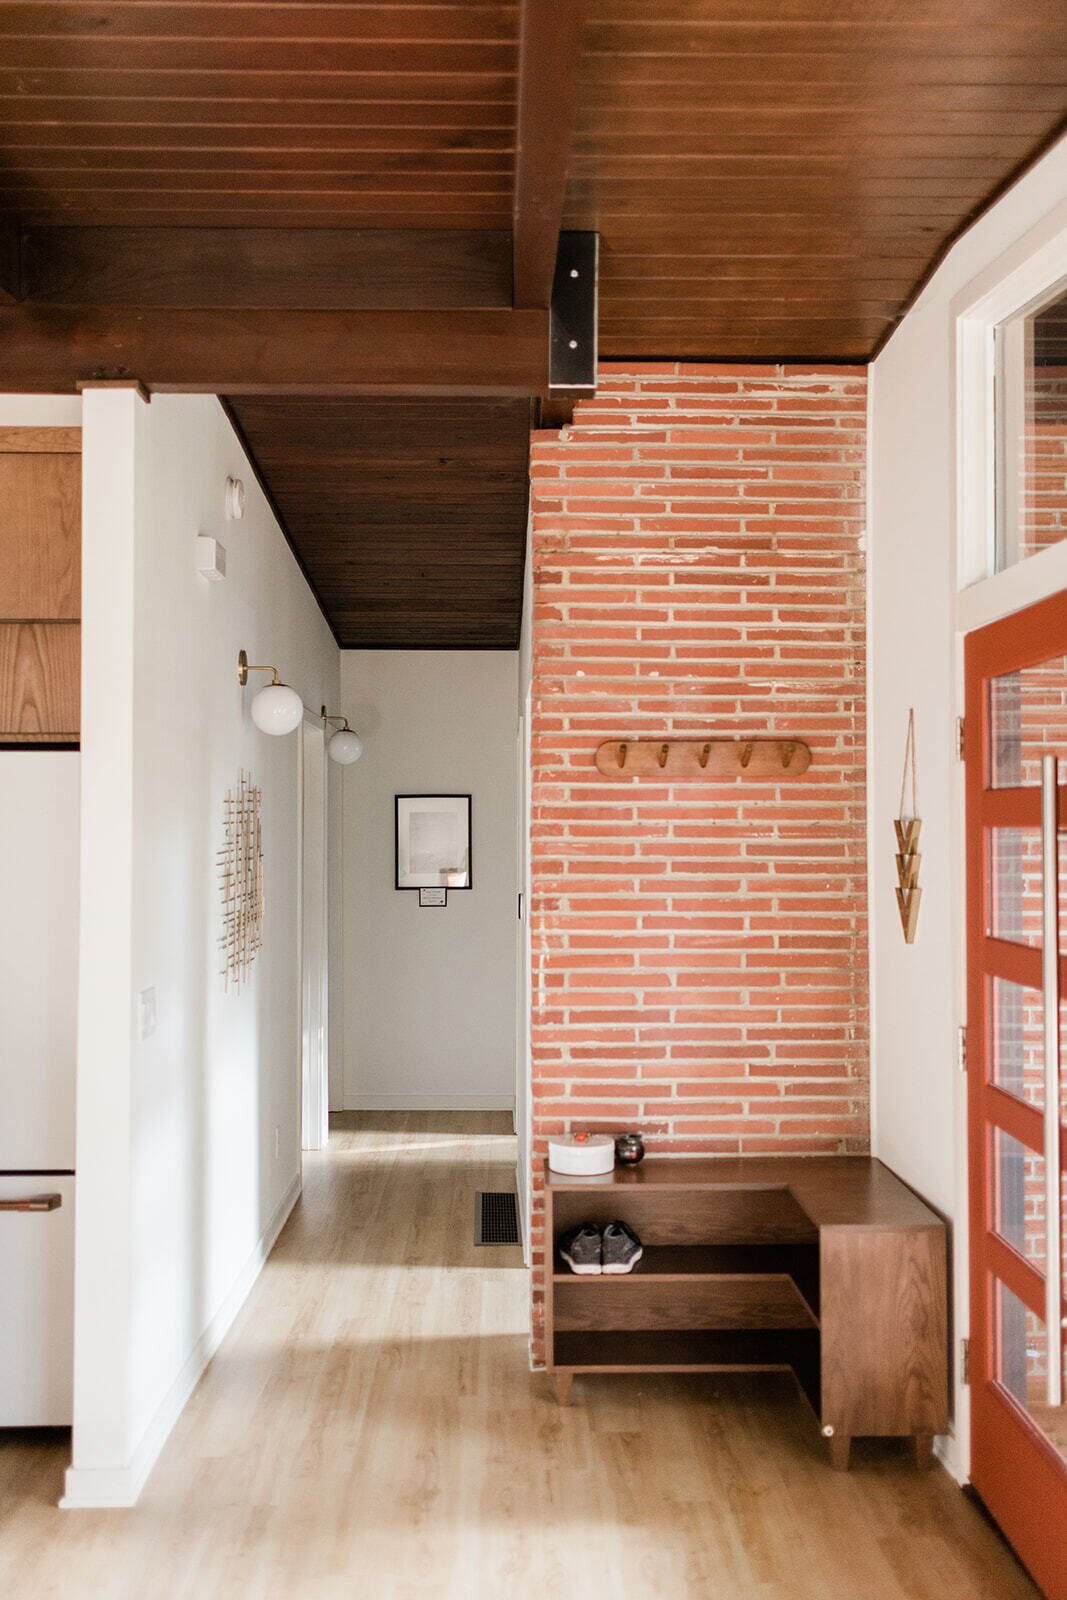 With the closet removed, a brick wall was exposed to visually connect the interior and exterior. A new glass front door illuminates the entryway with natural light.  Photo 5 of 21 in Before & After: A Renovated Iowan Midcentury House Impresses With an Affordable $330K Price Point